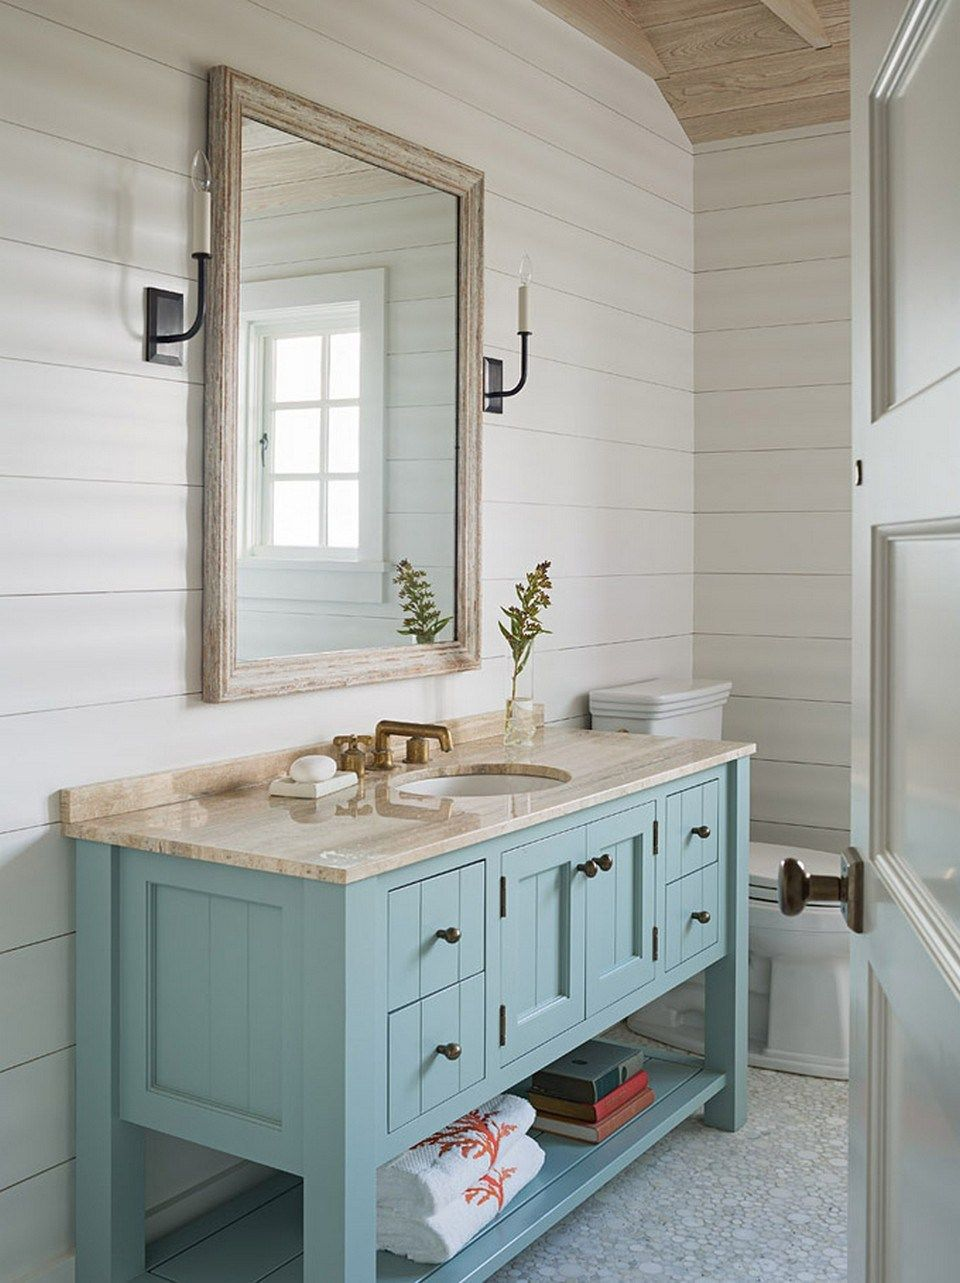 Pin by Jeannine W on Bath remodel | Pinterest | Bath, House and Coastal